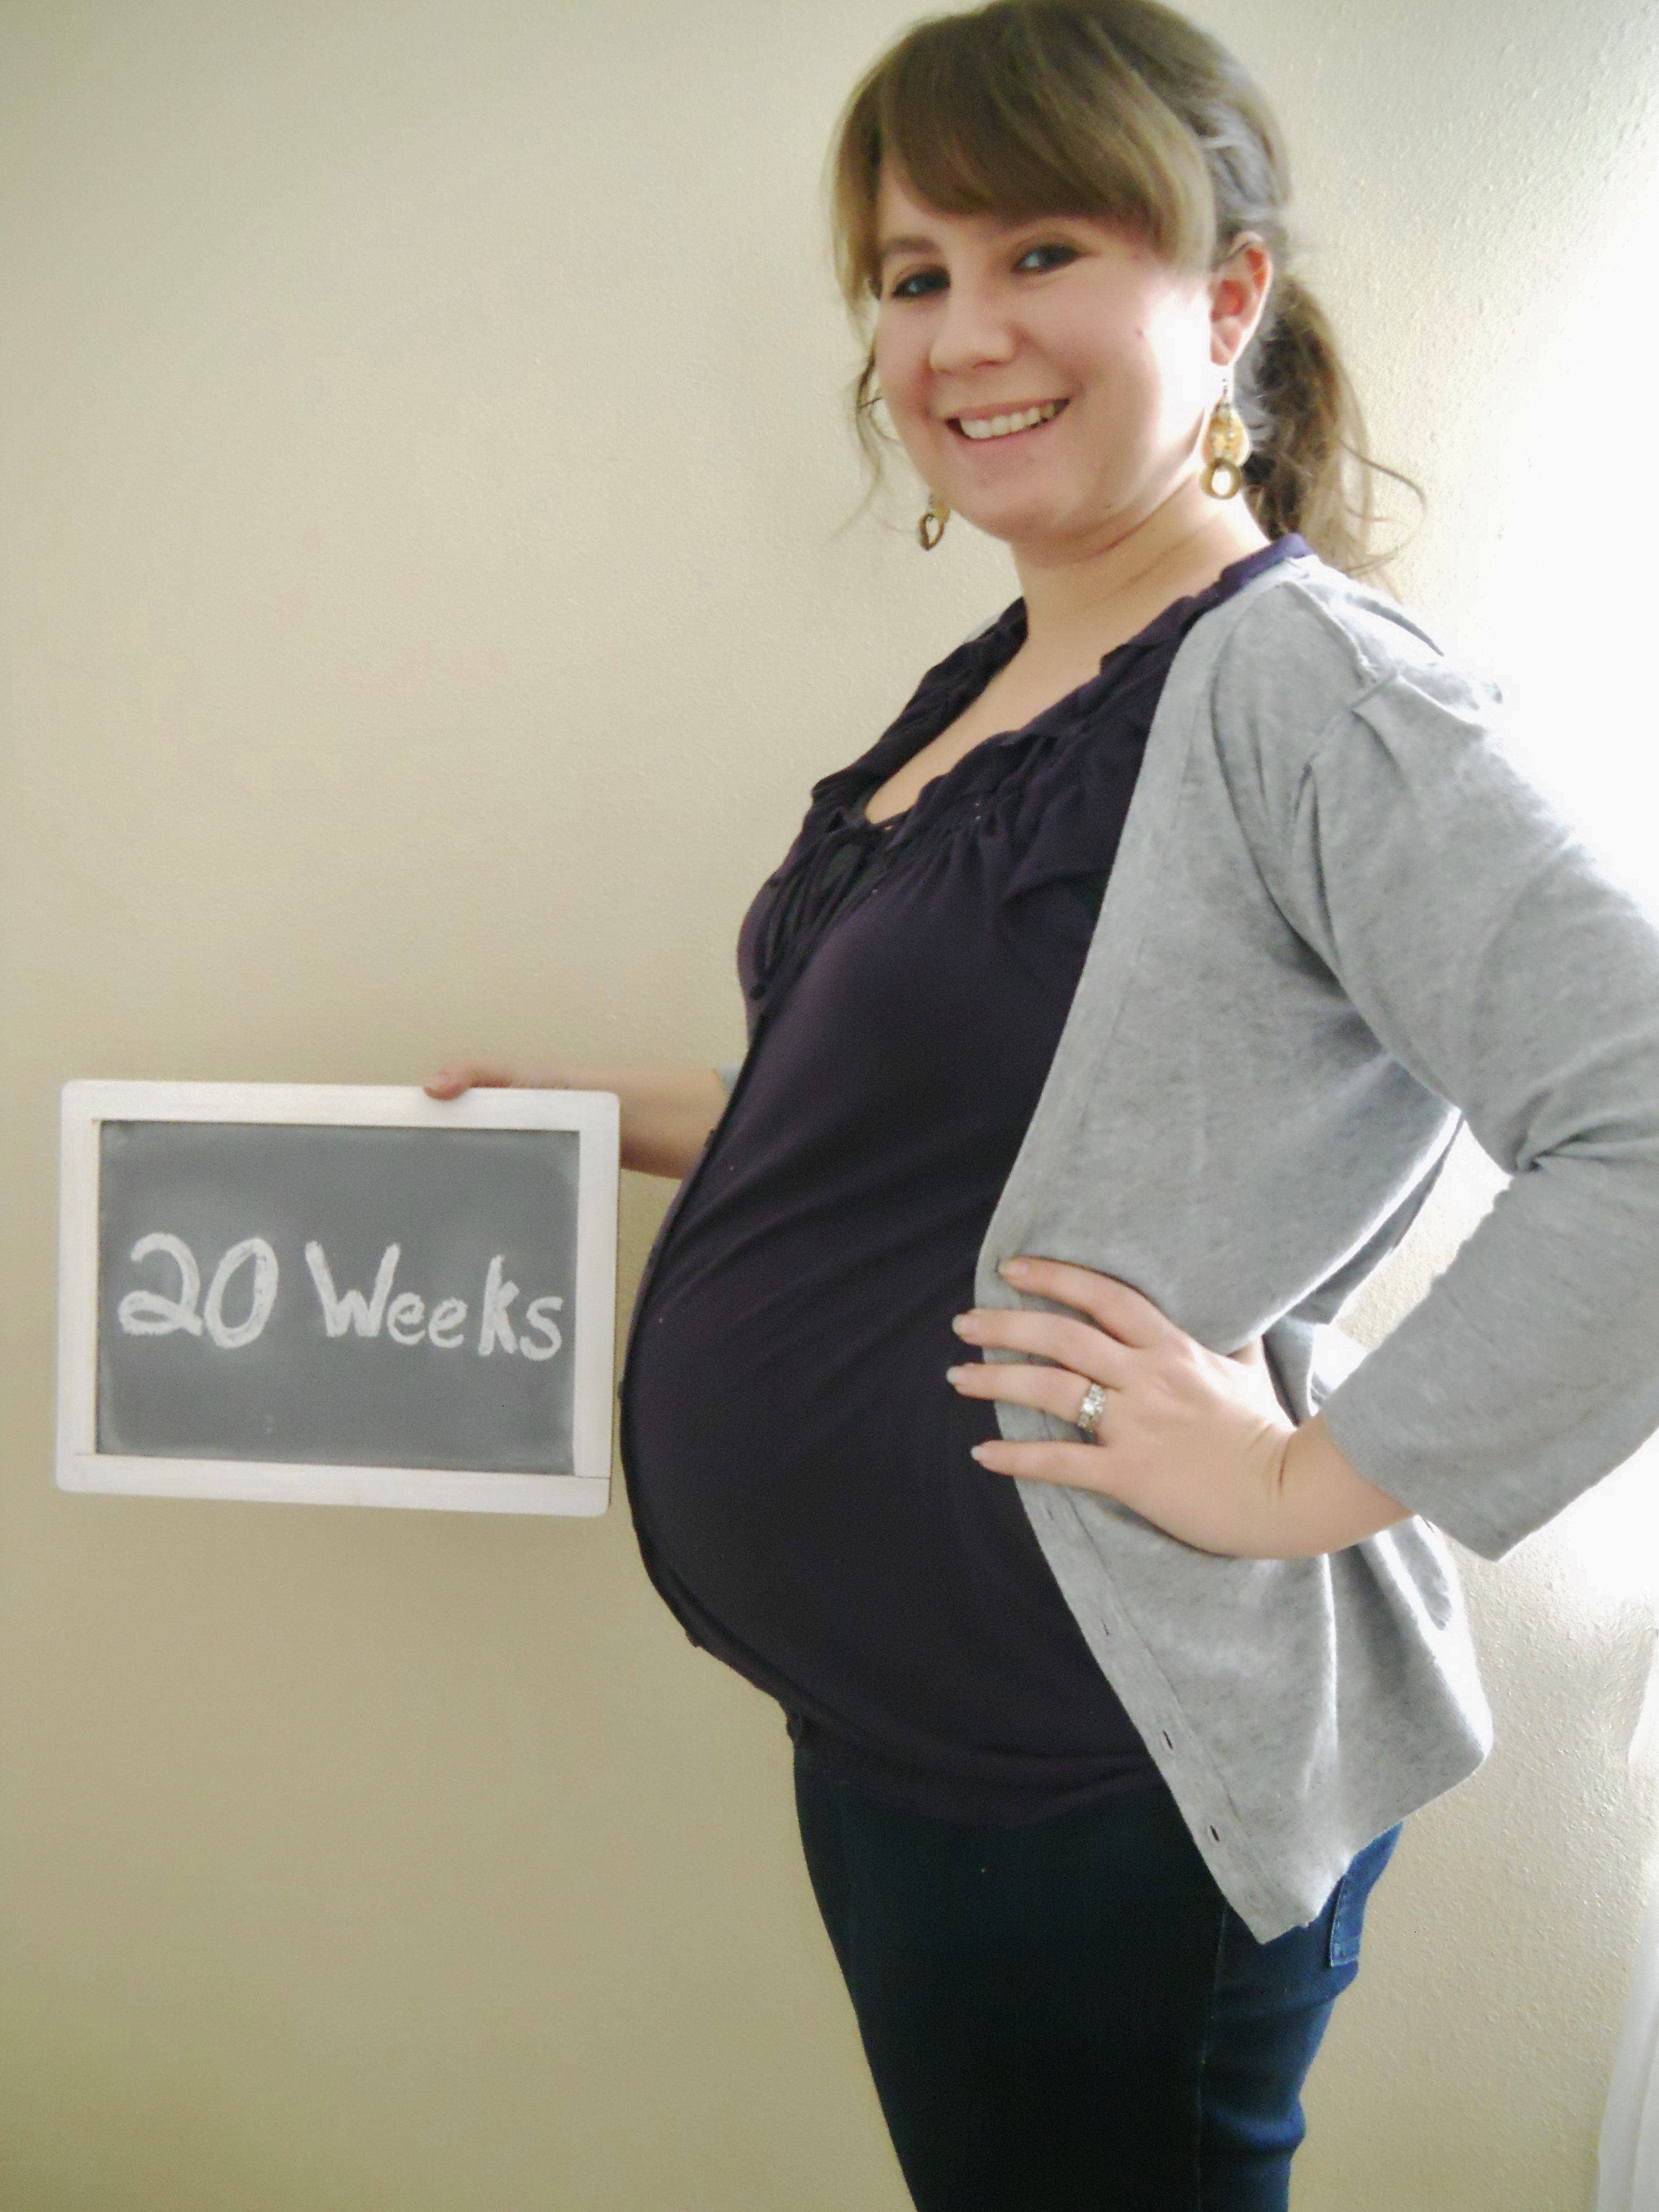 How many weeks is five months pregnant